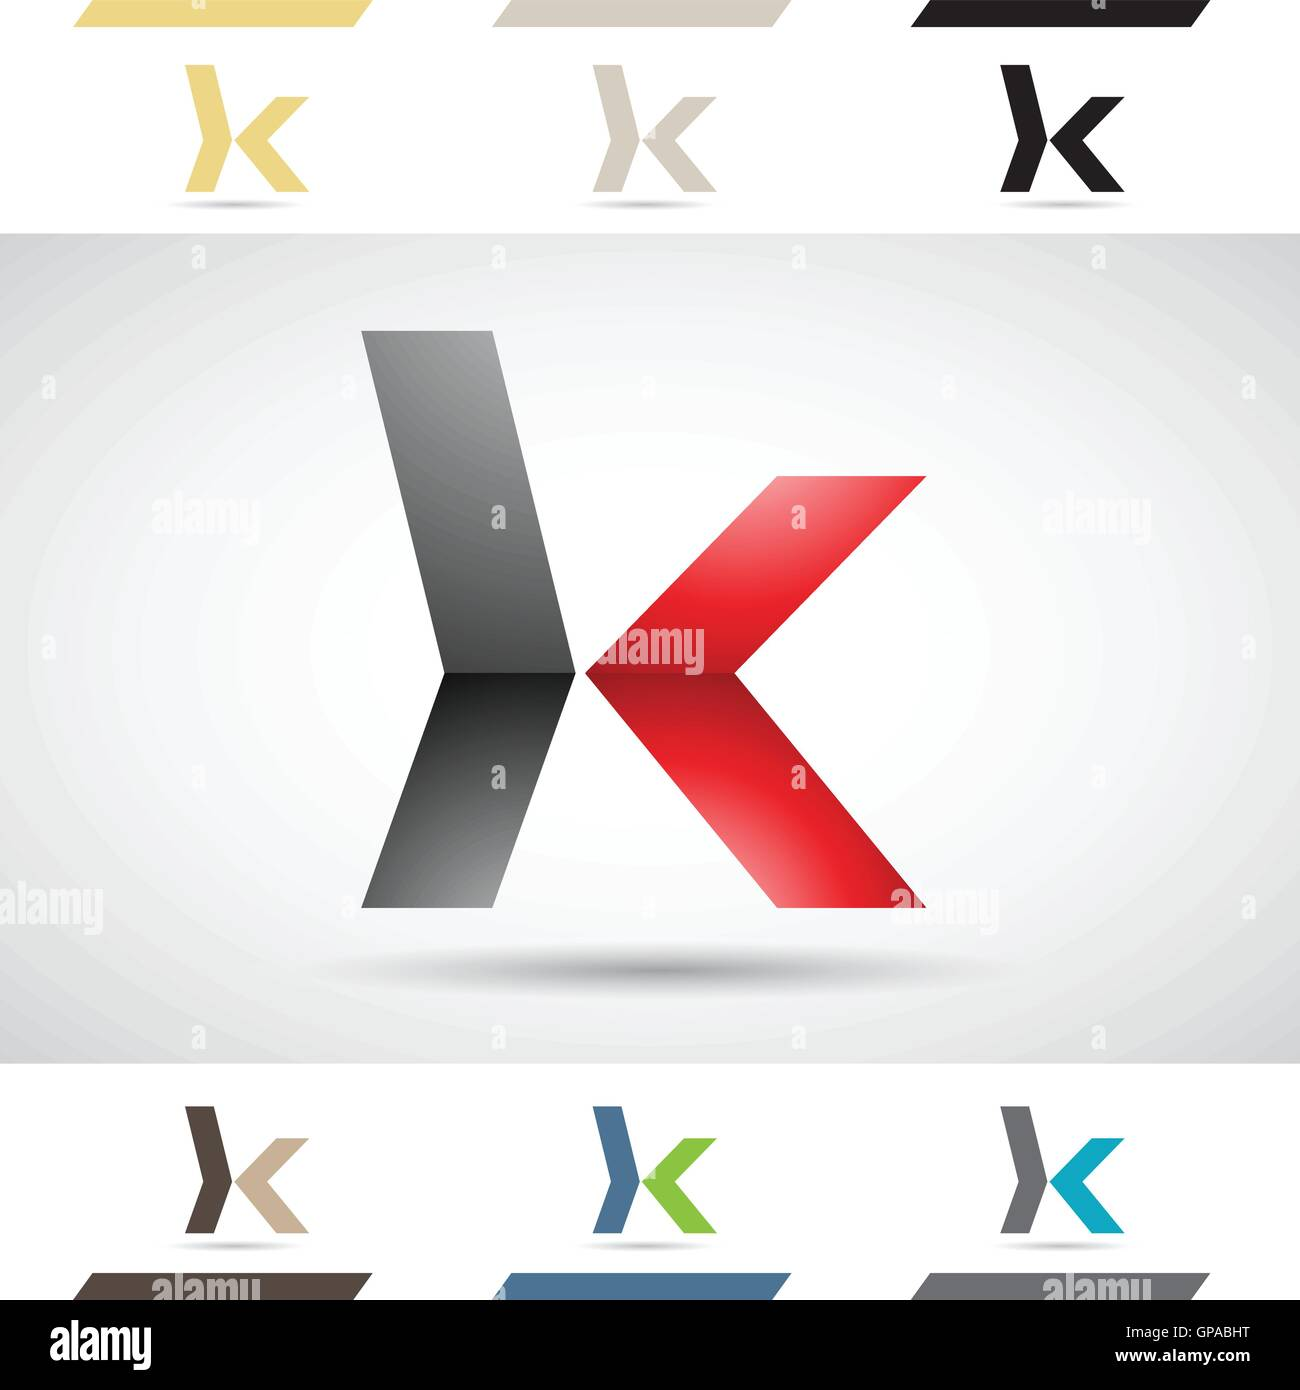 Design Concept of Colorful Stock Logos Icons and Shapes of Letter K, Vector Illustration - Stock Image